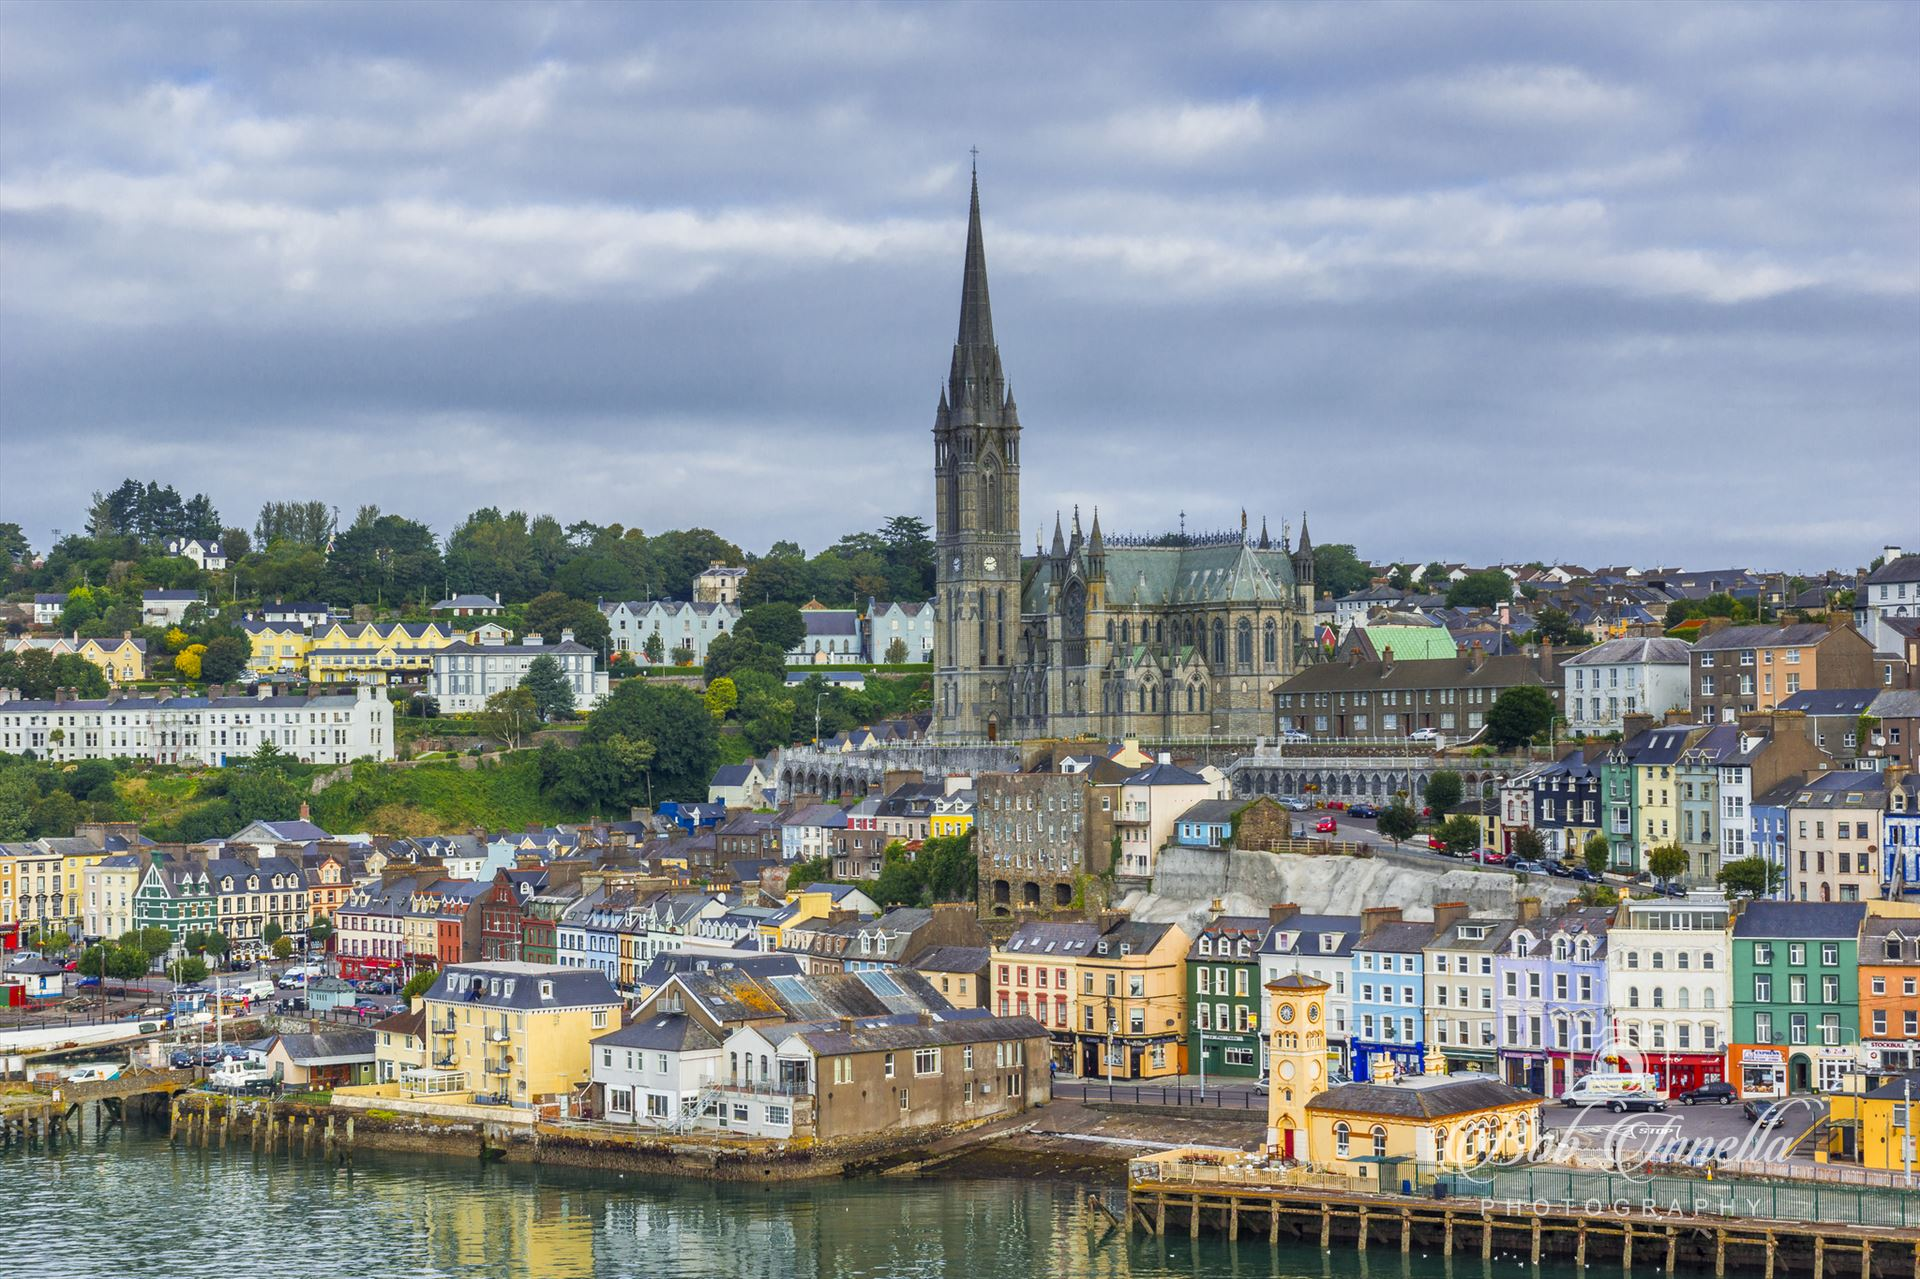 Port in Cobh, Ireland - Cobh, Ireland 2014 by Buckmaster